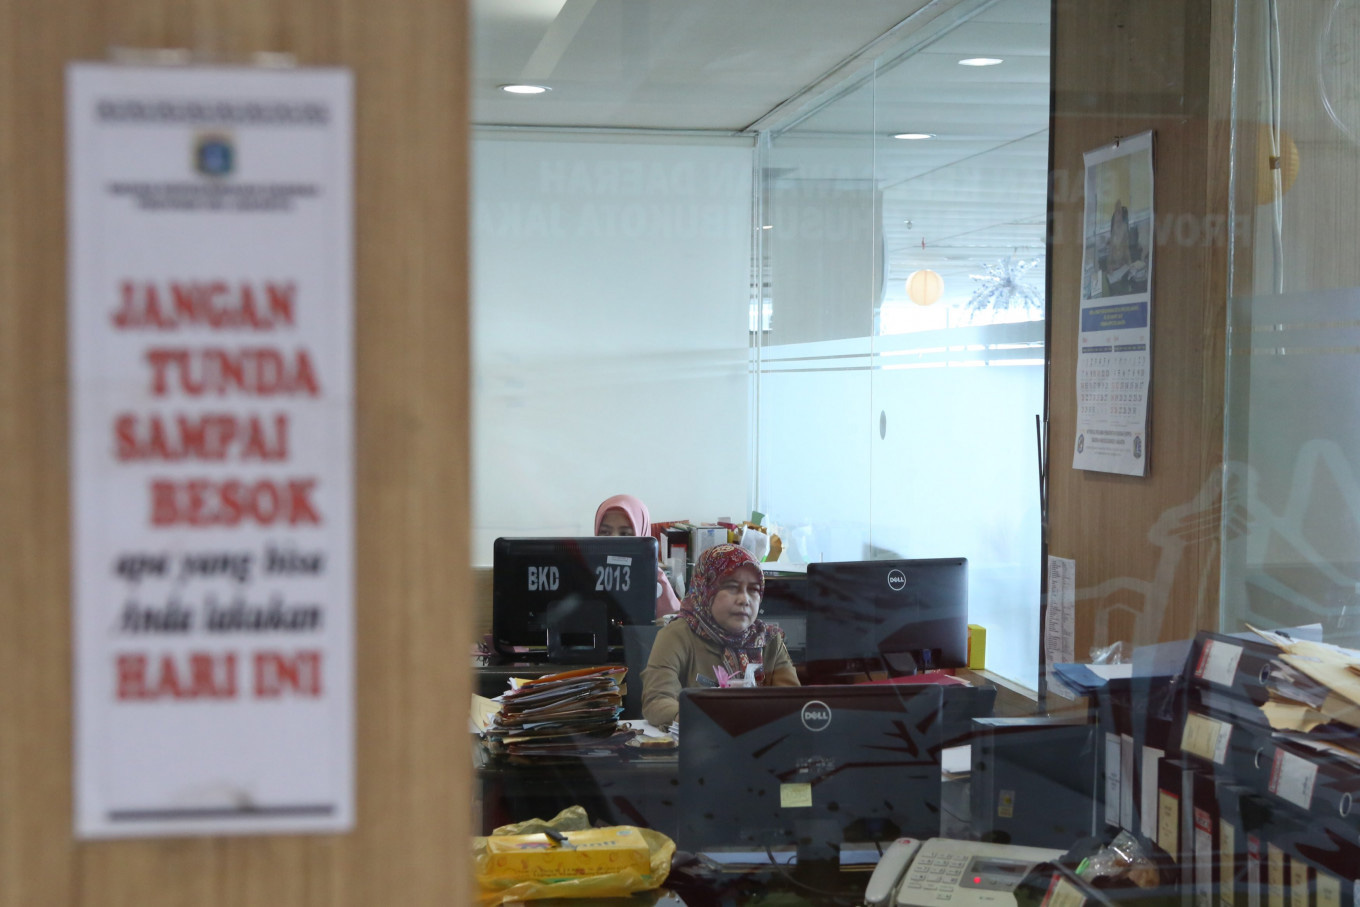 Jokowi's disruption of absurd design for bureaucratic reform